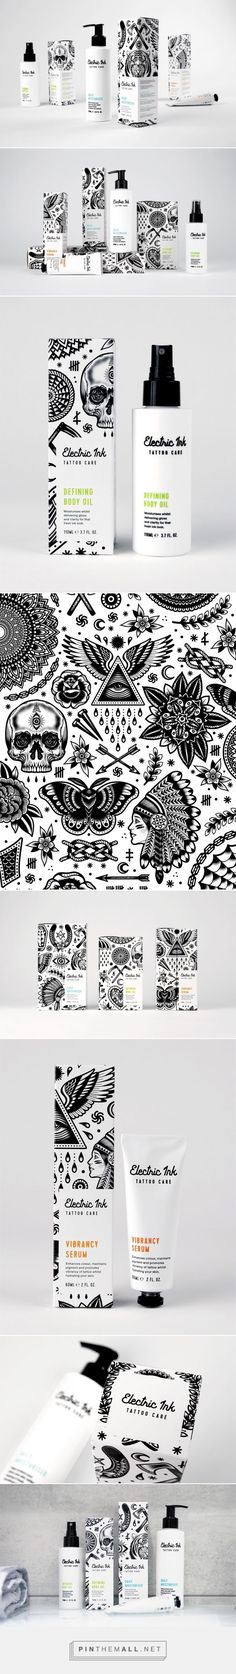 Electric Ink Tattoo Care packaging design by Robot Food - http://www.packagingoftheworld.com/2017/03/electric-ink-tattoo-care.html